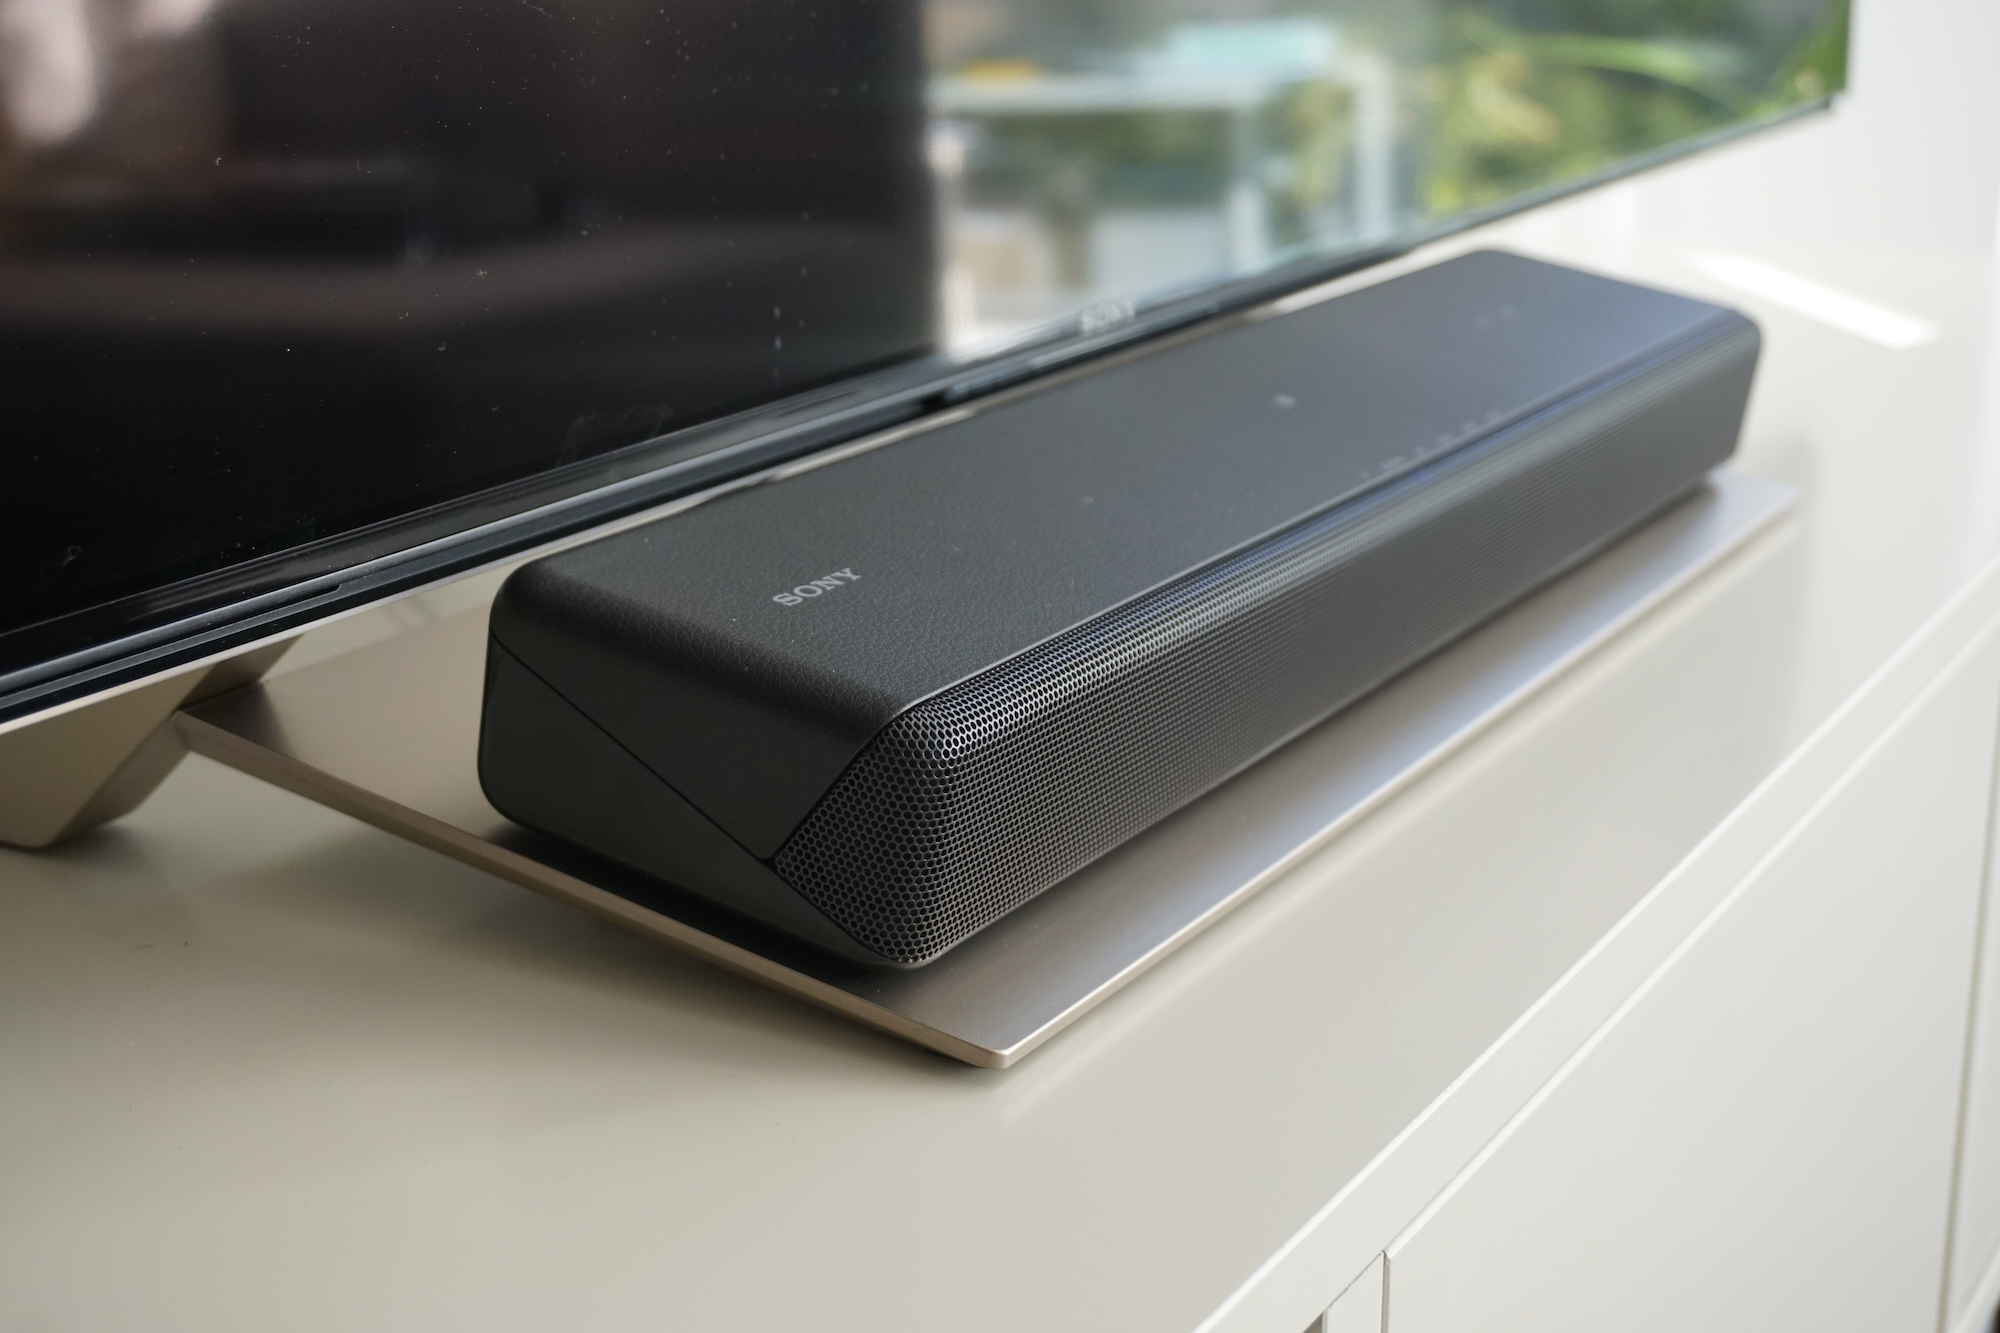 Sony Ht Mt300 Compact Soundbar Review Best Buy Blog